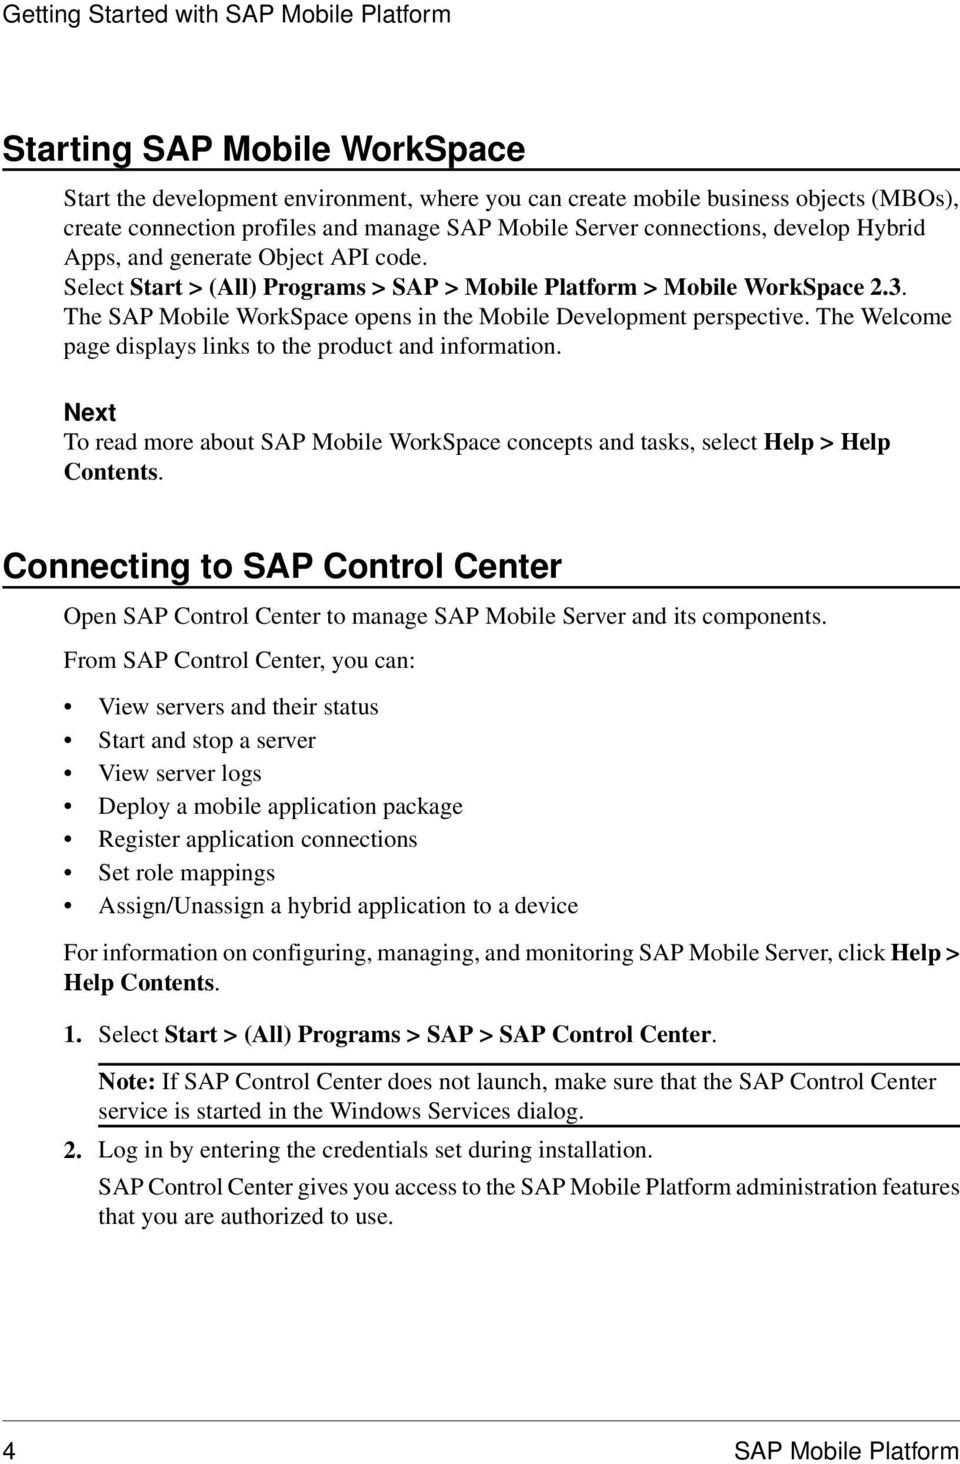 The SAP Mobile WorkSpace opens in the Mobile Development perspective. The Welcome page displays links to the product and information.